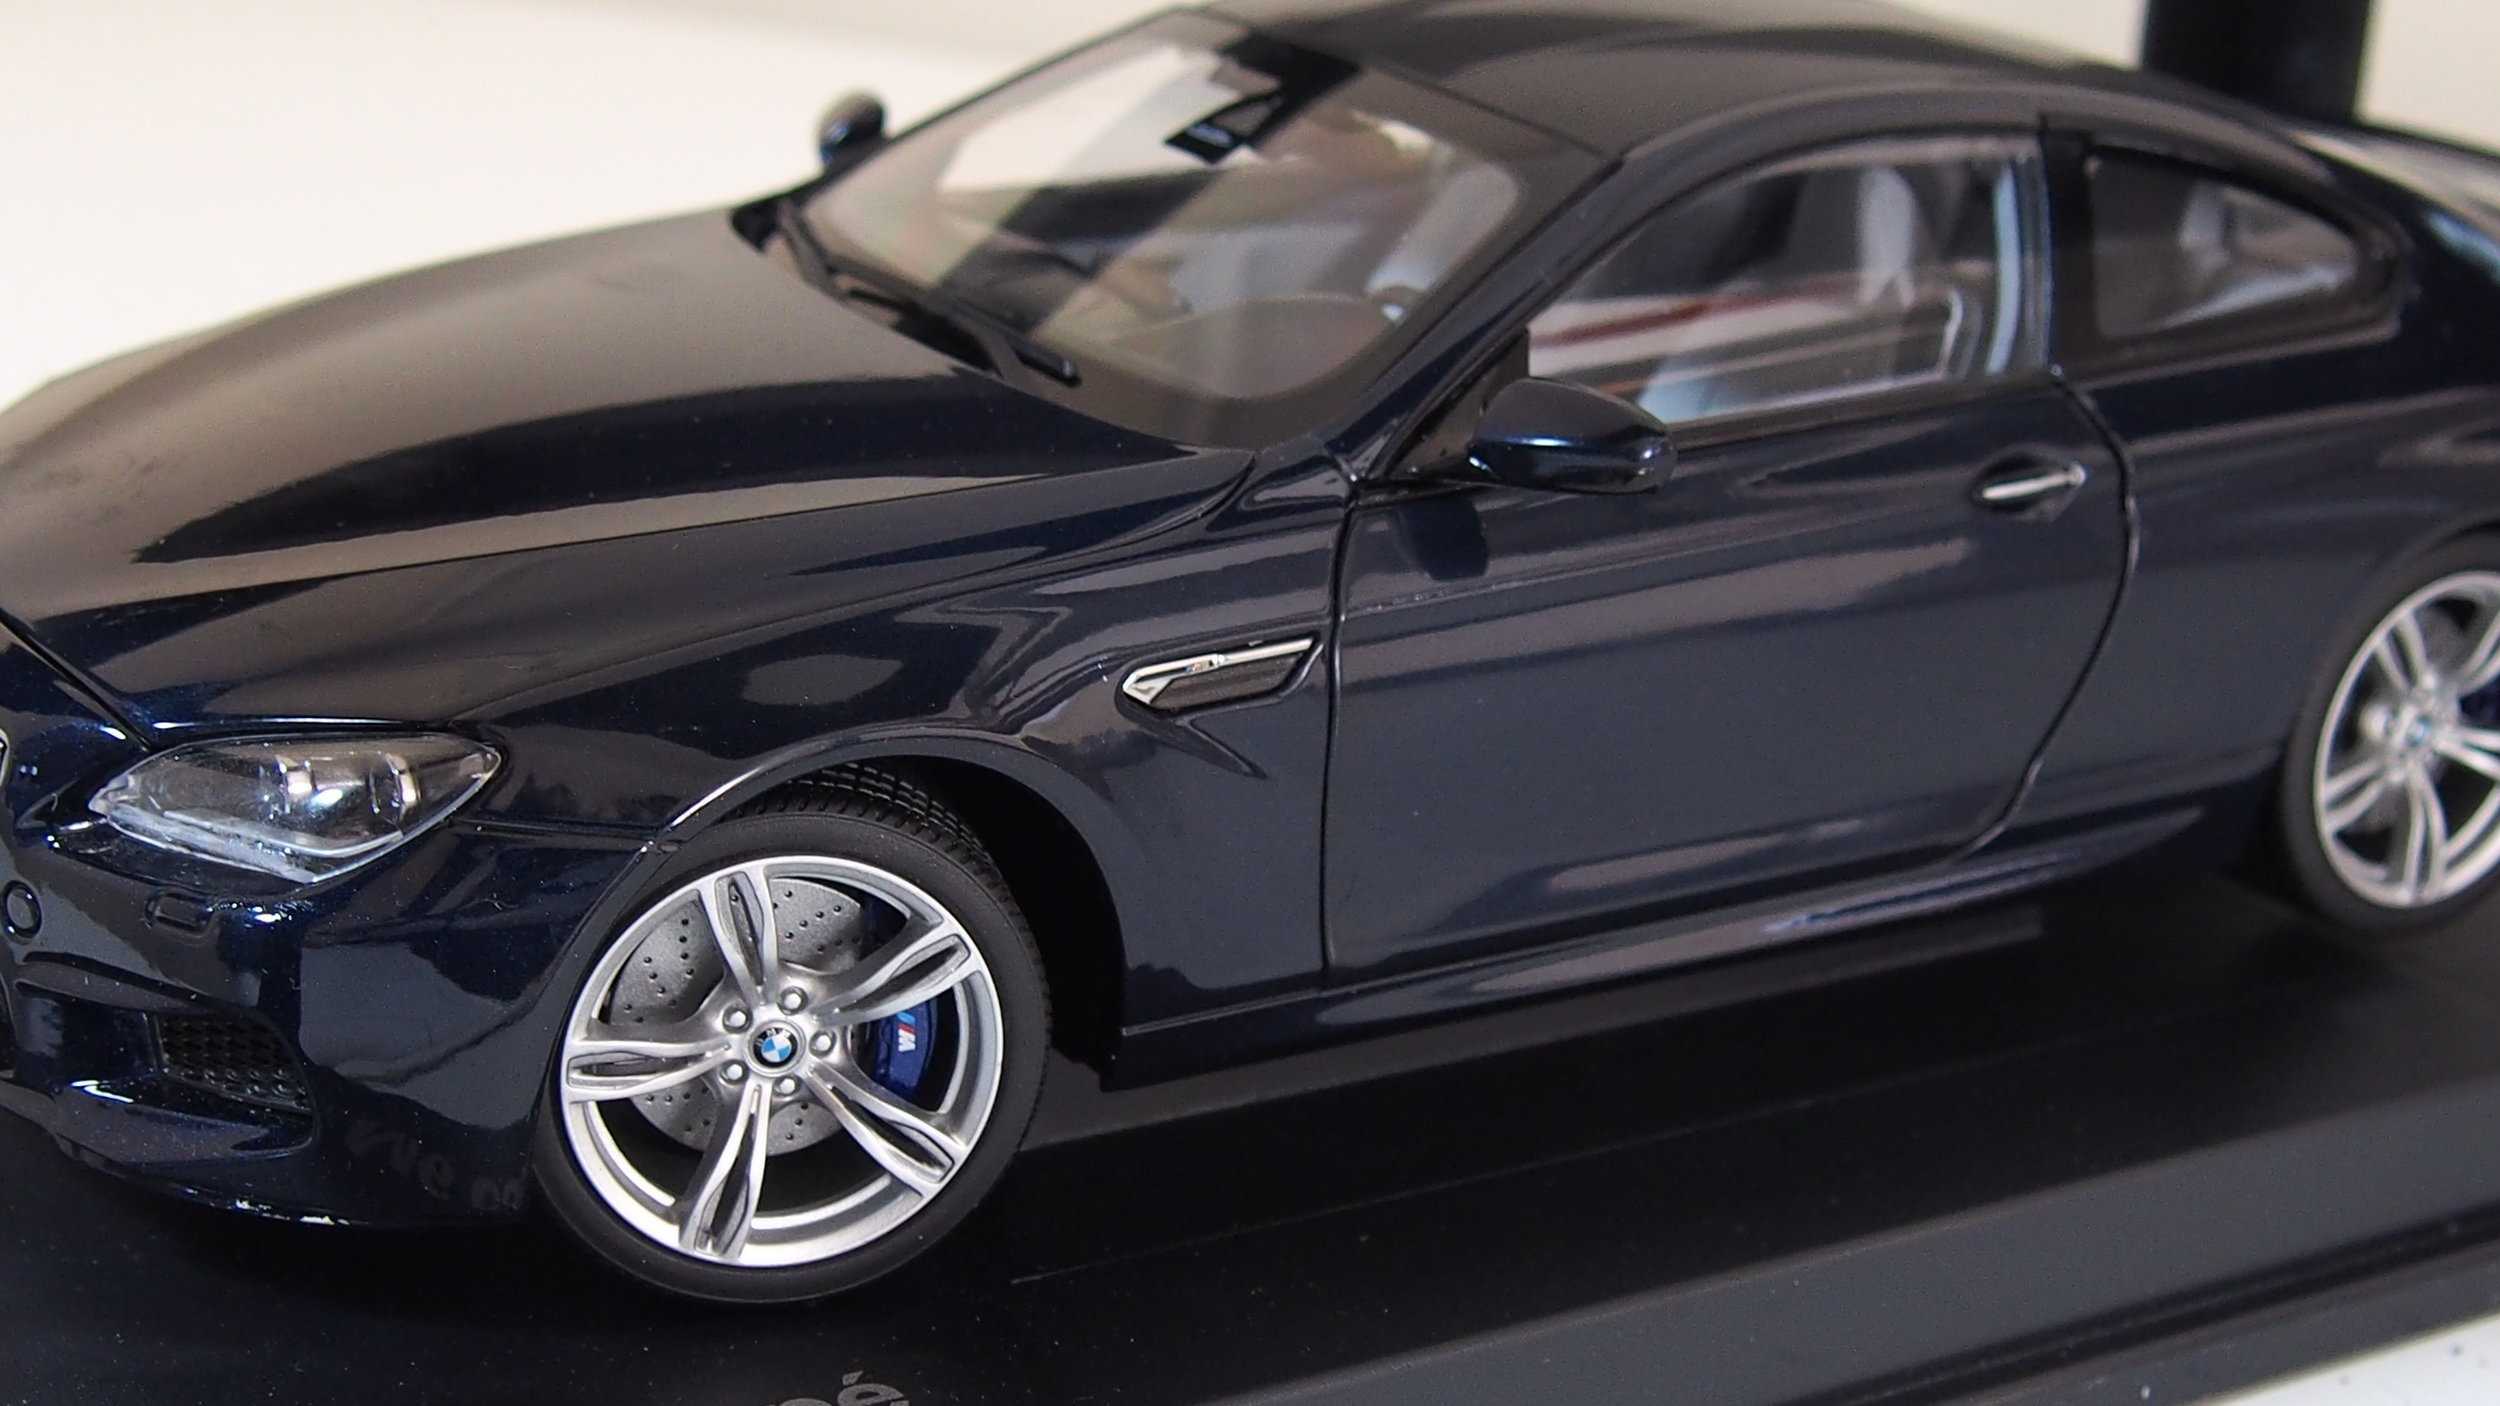 BMW M6 Coupe By Paragon Boxed In Dark Blue 1:18 Scale